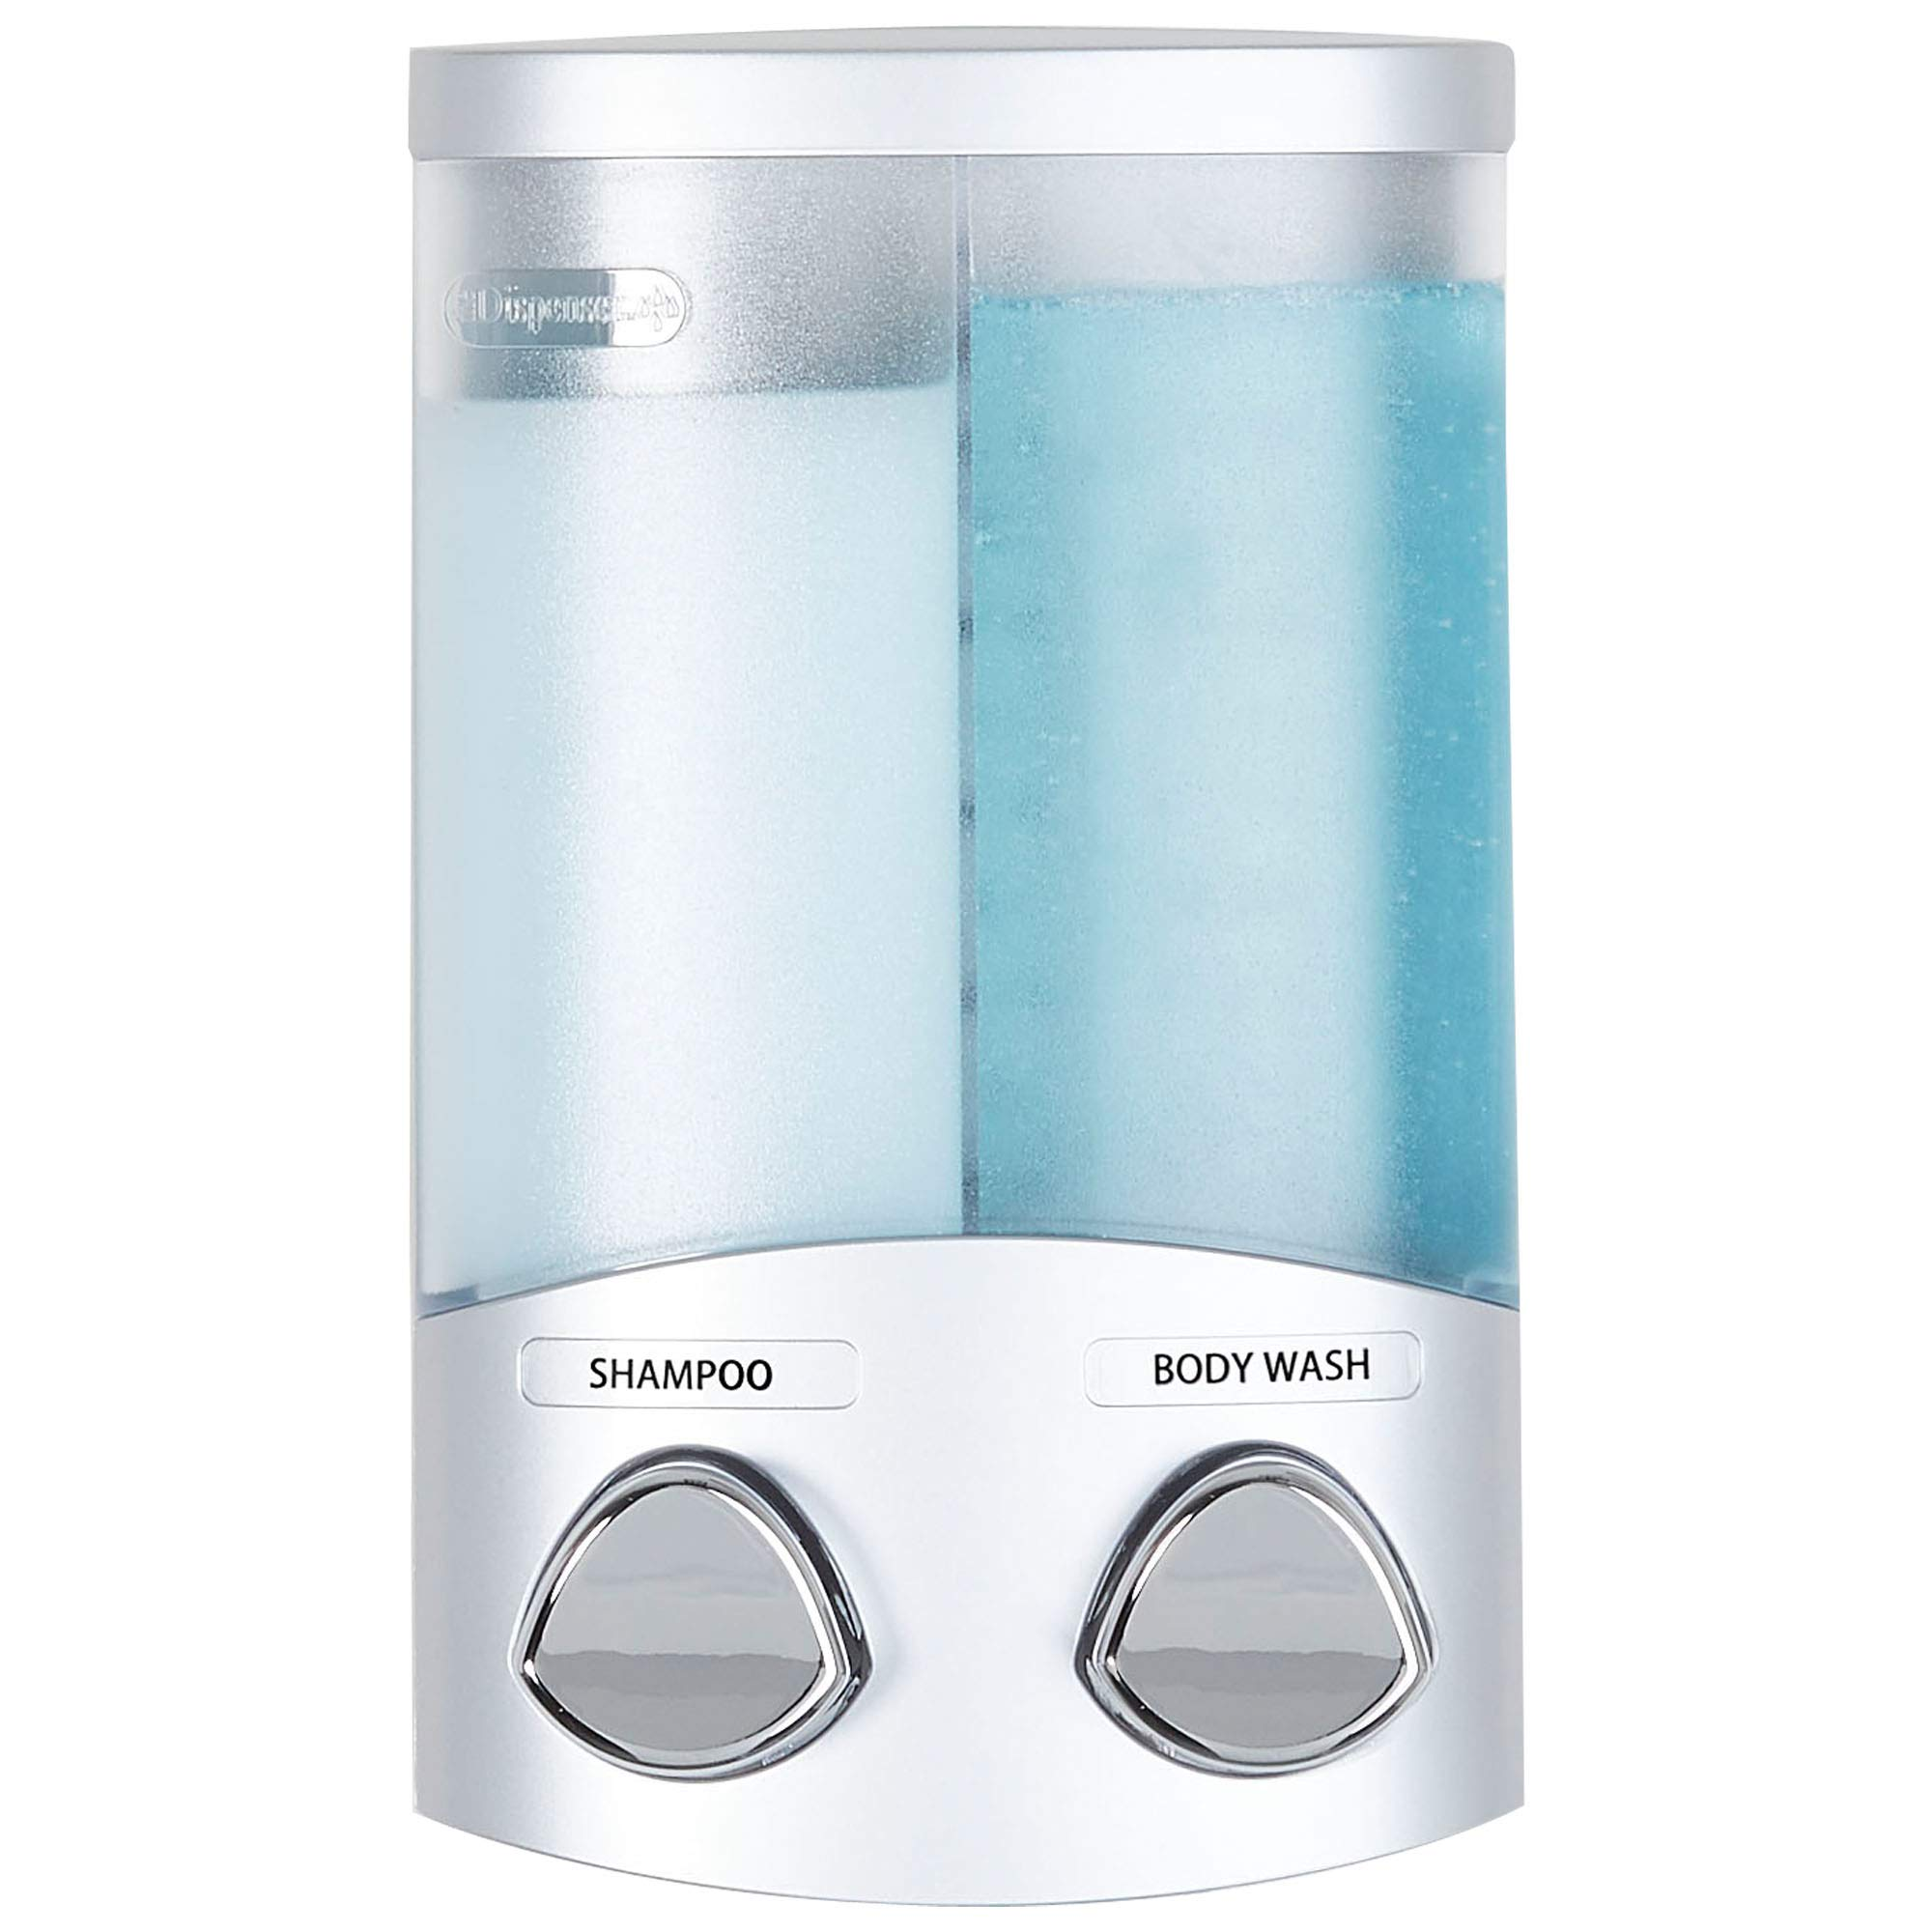 Best wall dispensers for shower | Amazon.com